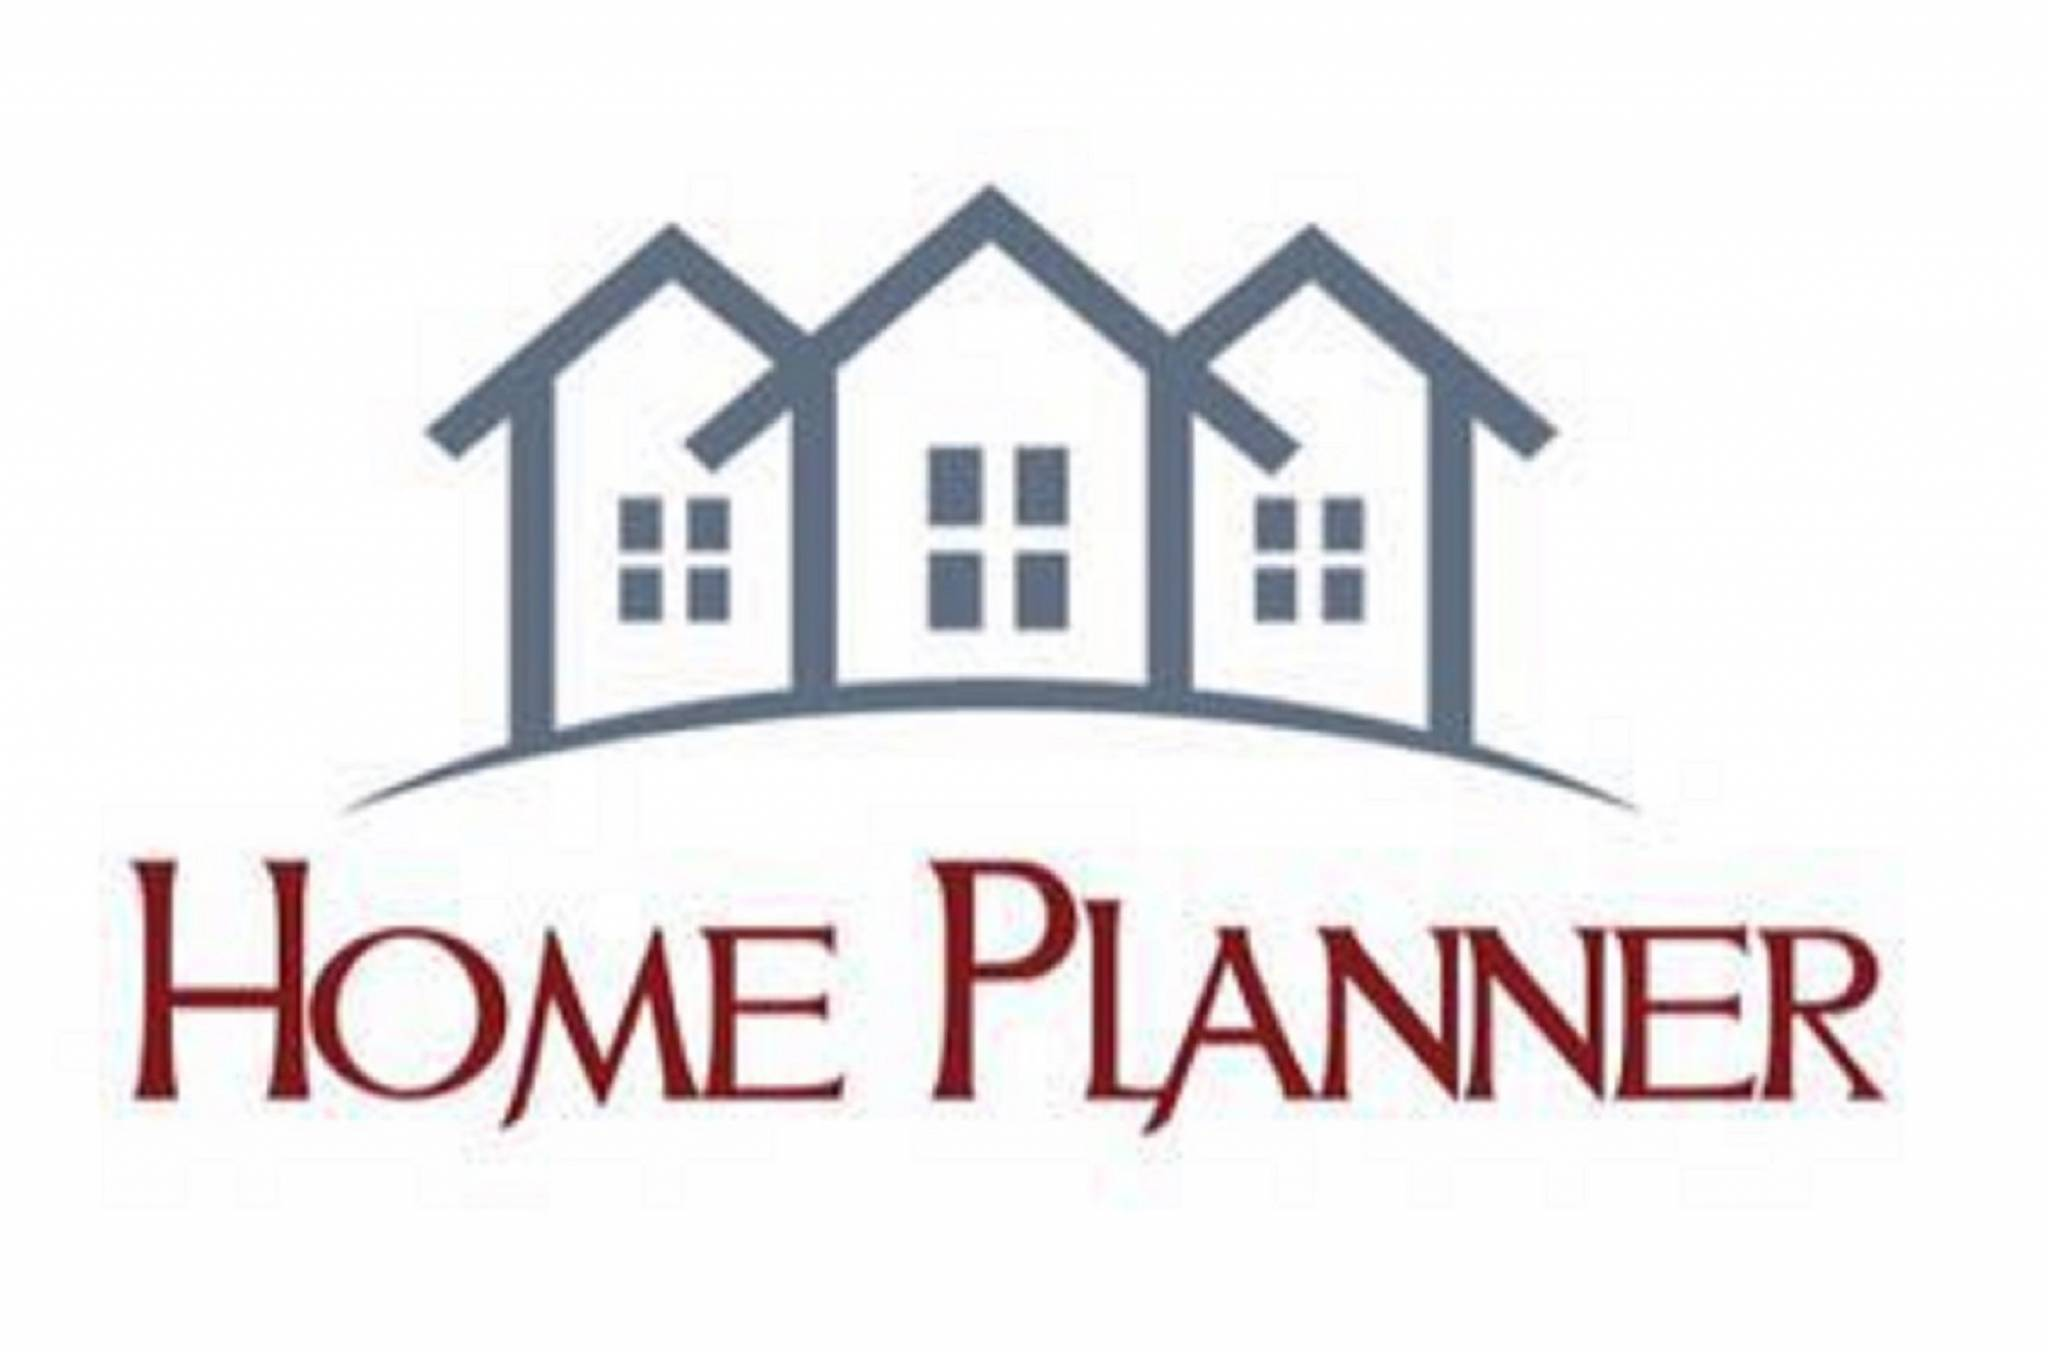 Home Planner